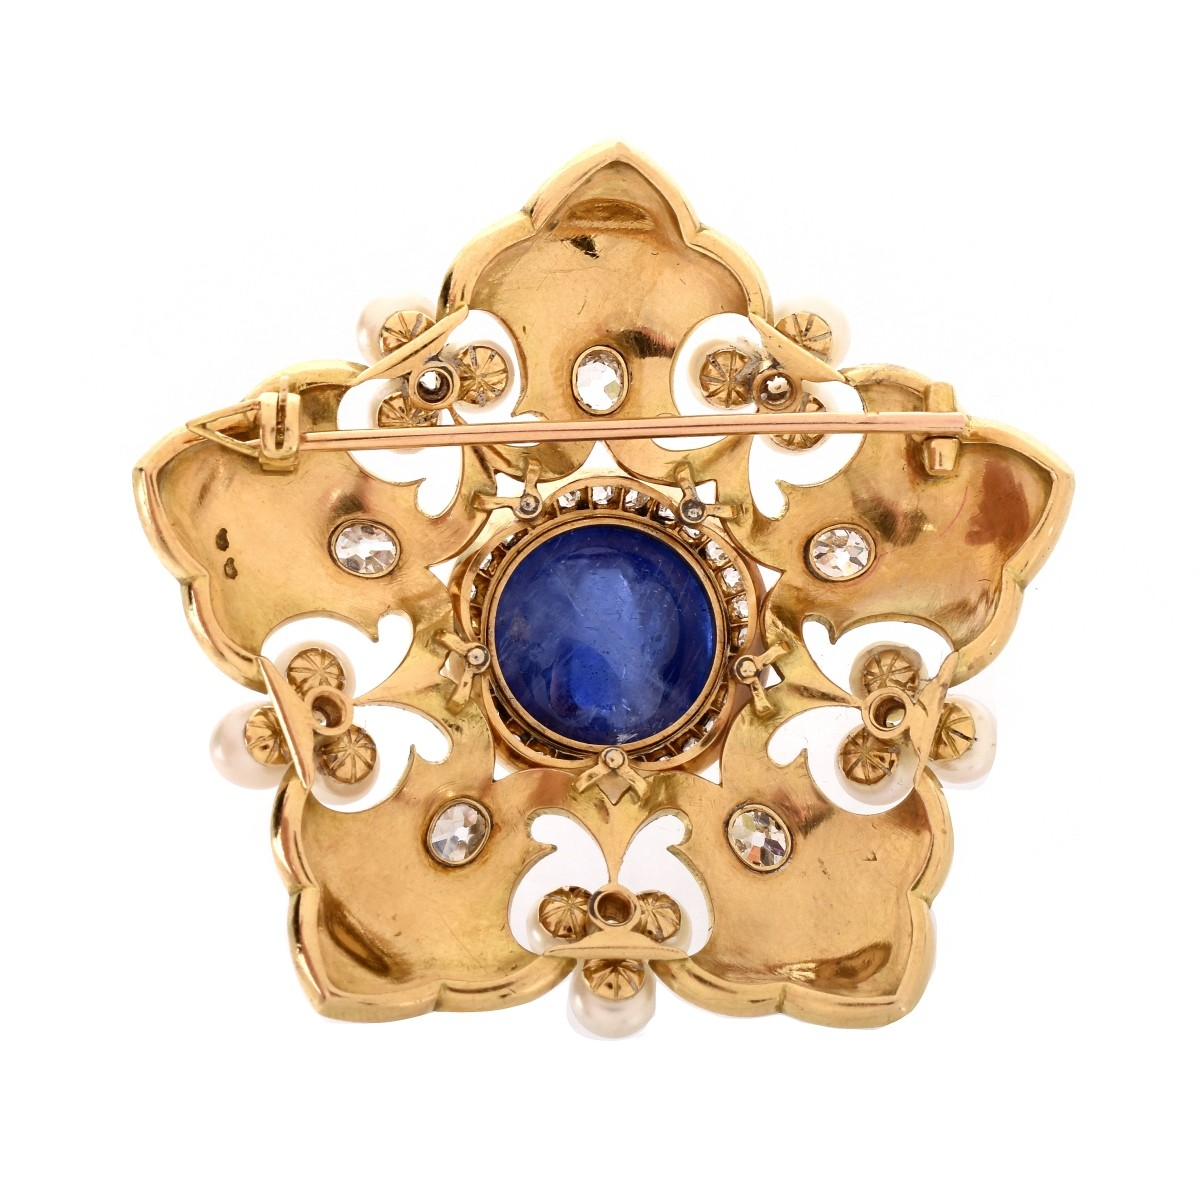 Vintage Cabochon Sapphire and 18K Brooch